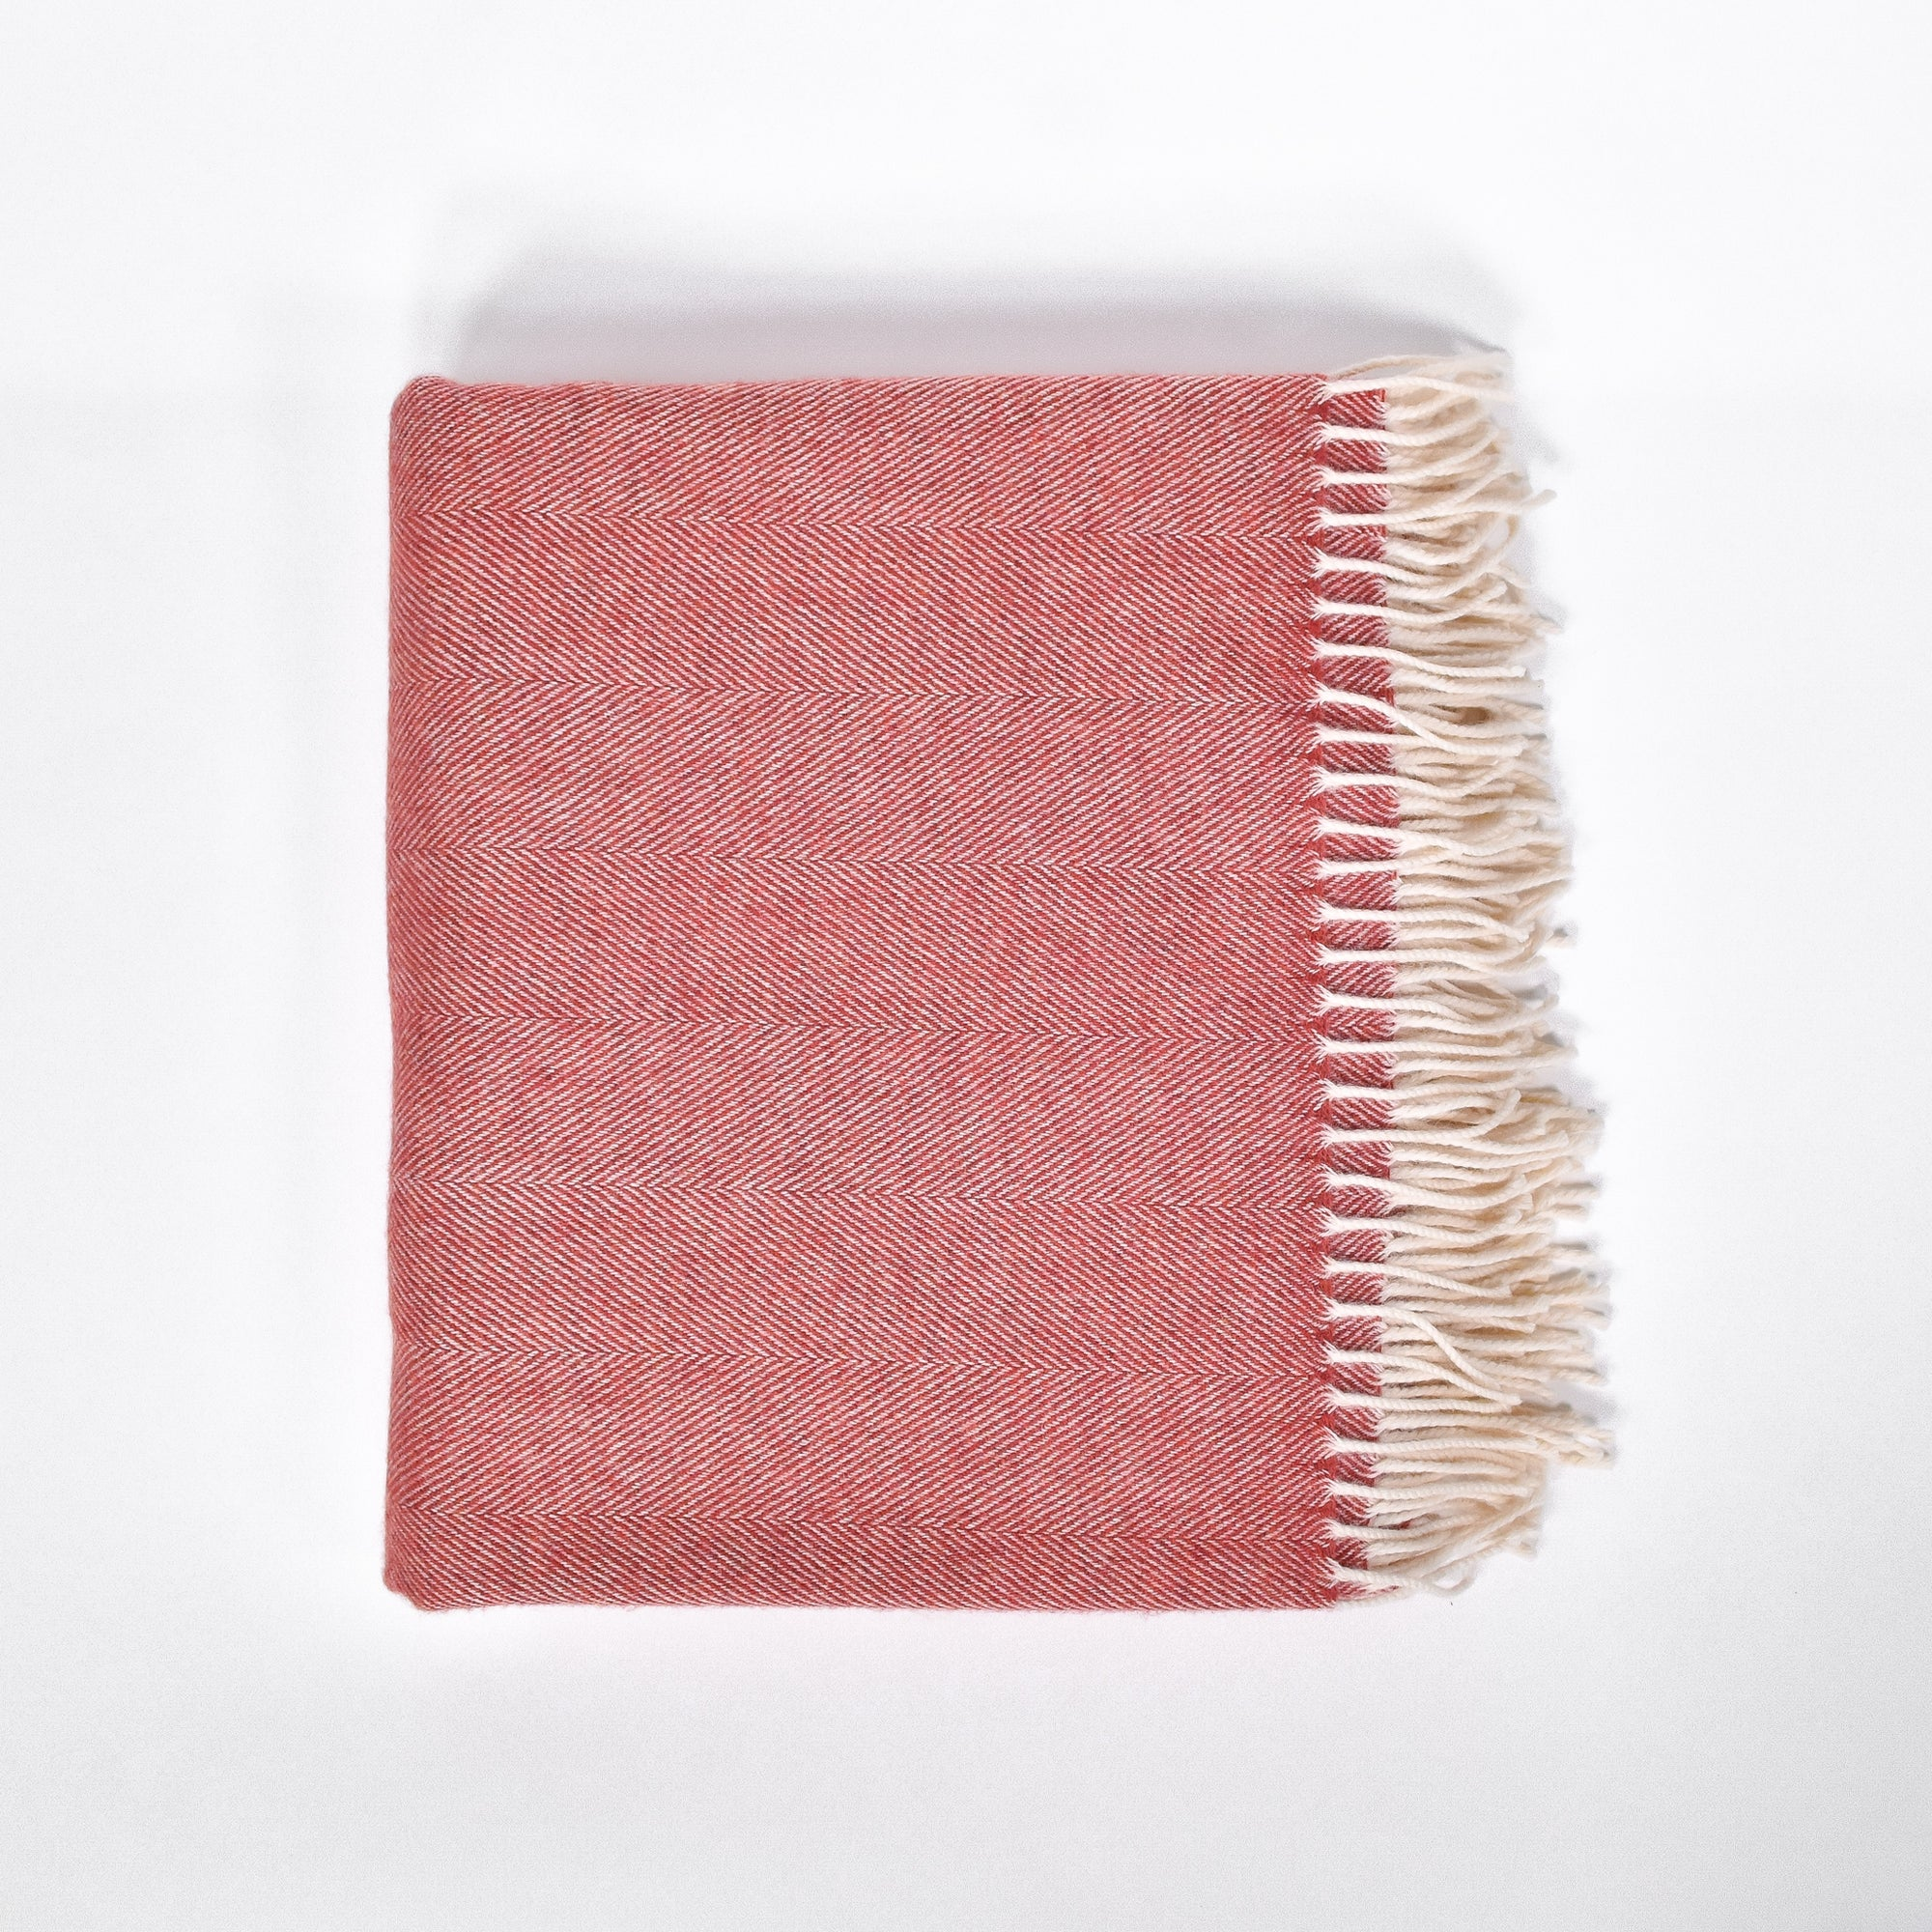 The Cayenne Wool Blanket - Rug & Weave